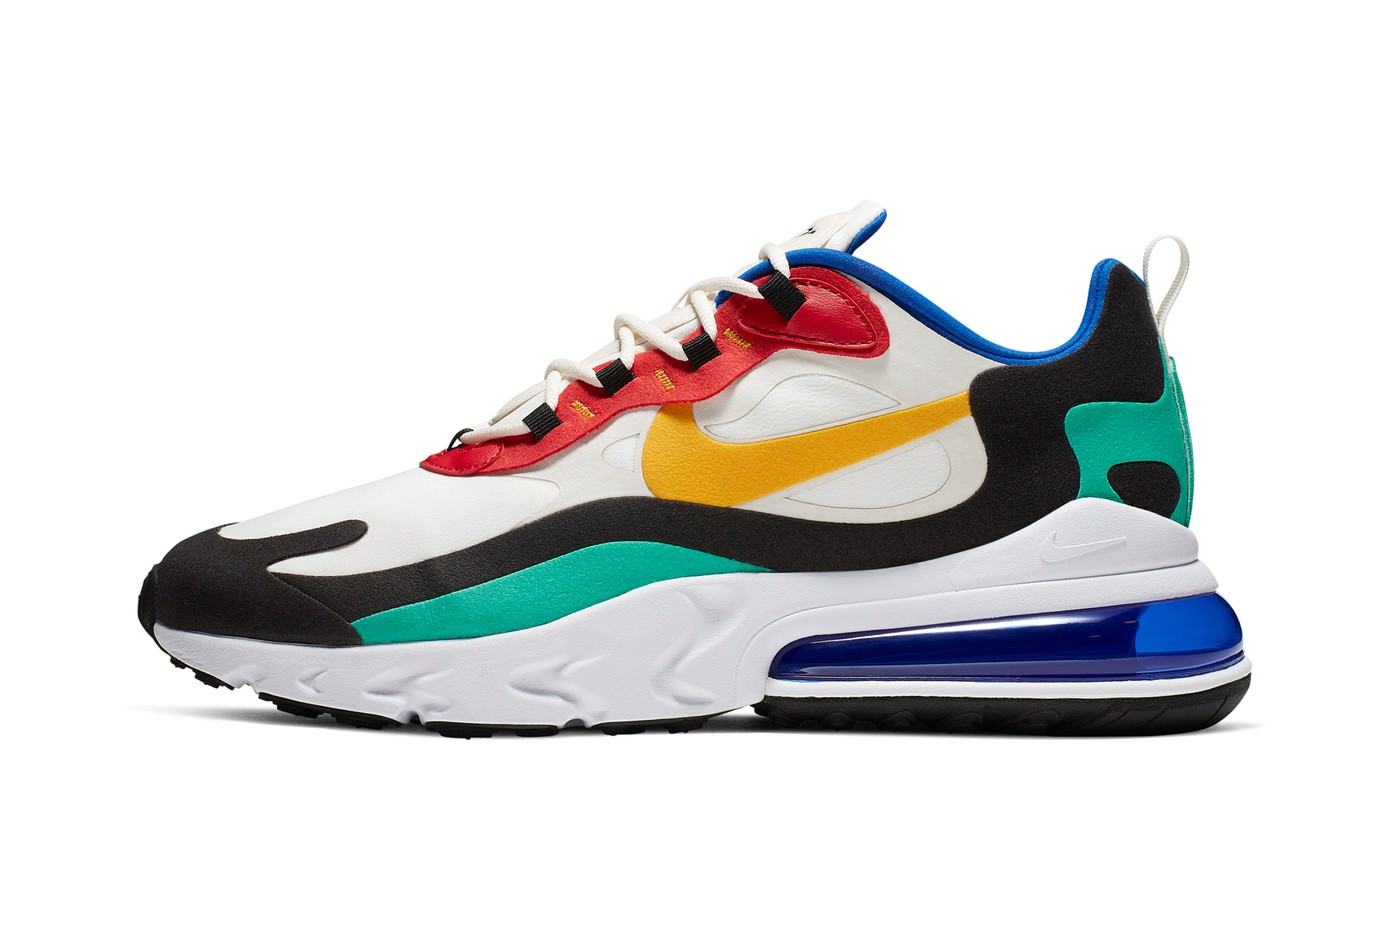 quality design 68ecc 6e5a1 The Air Max 270 React makes its debut at retailers globally and online  beginning July 3. See the initial colorways expected to launch throughout  Summer 2019 ...